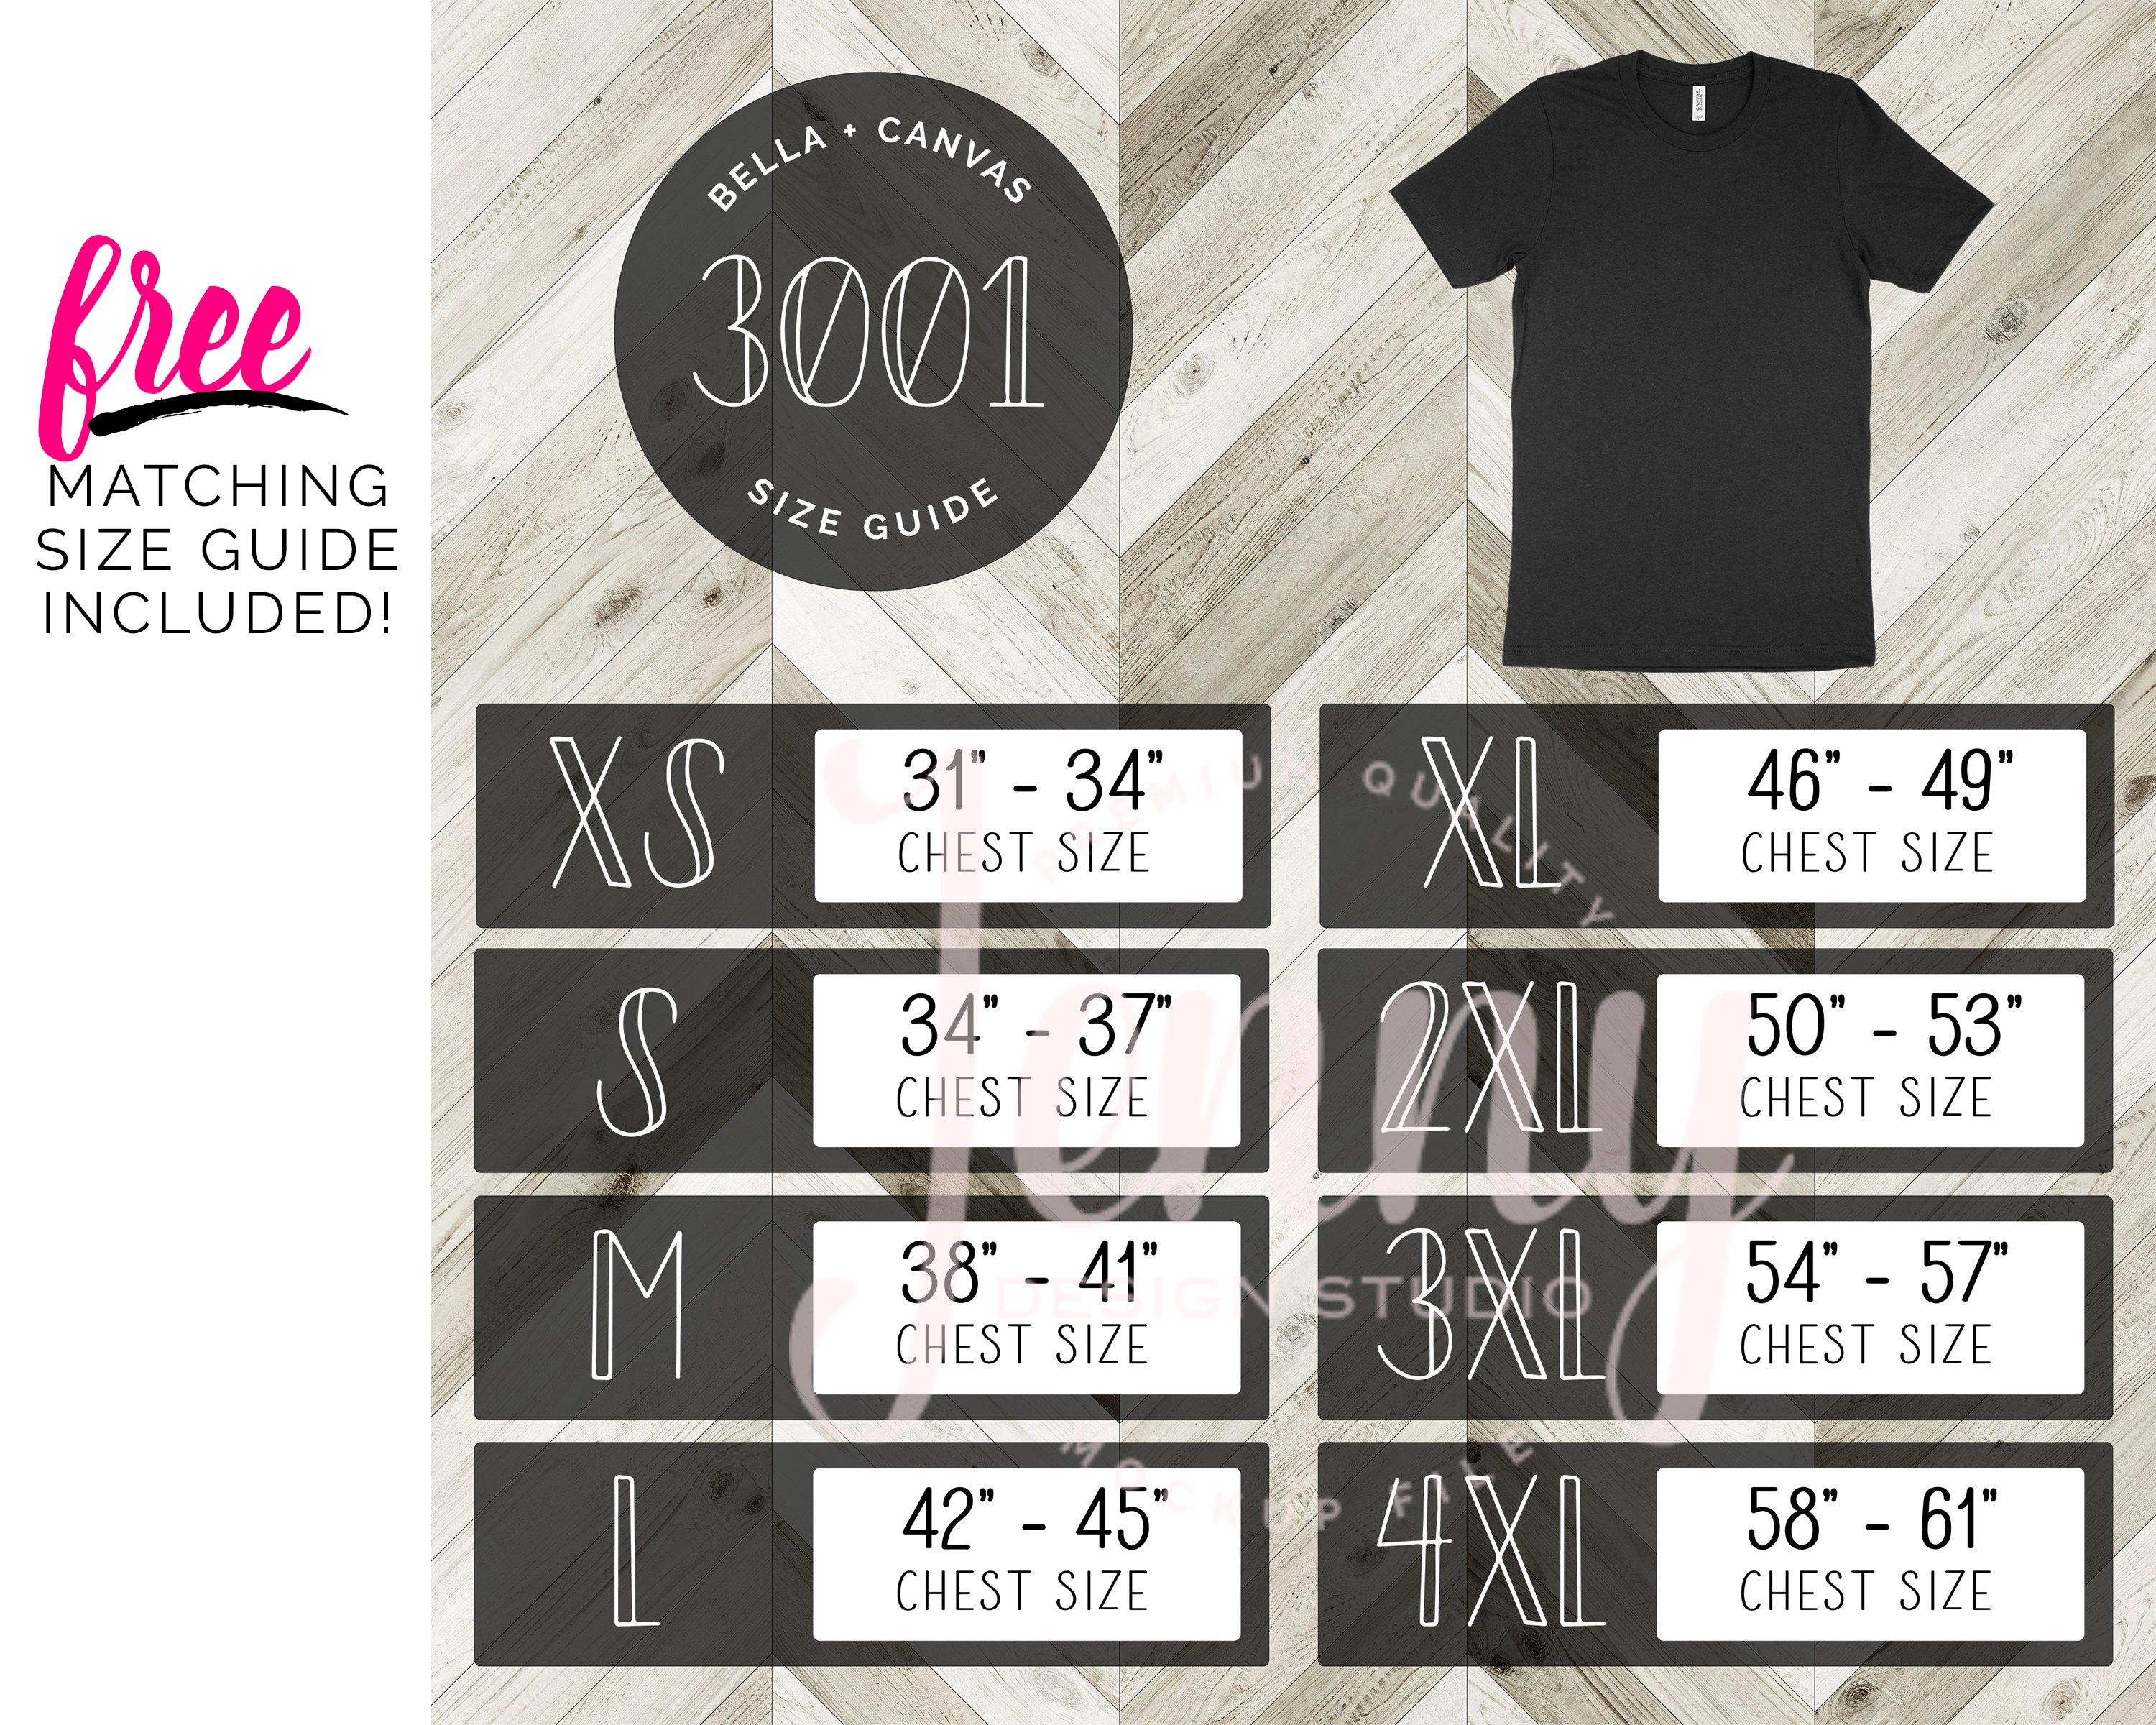 Bella Canvas 3001 Unisex Mockup Bundle, 95 Mockups example image 2